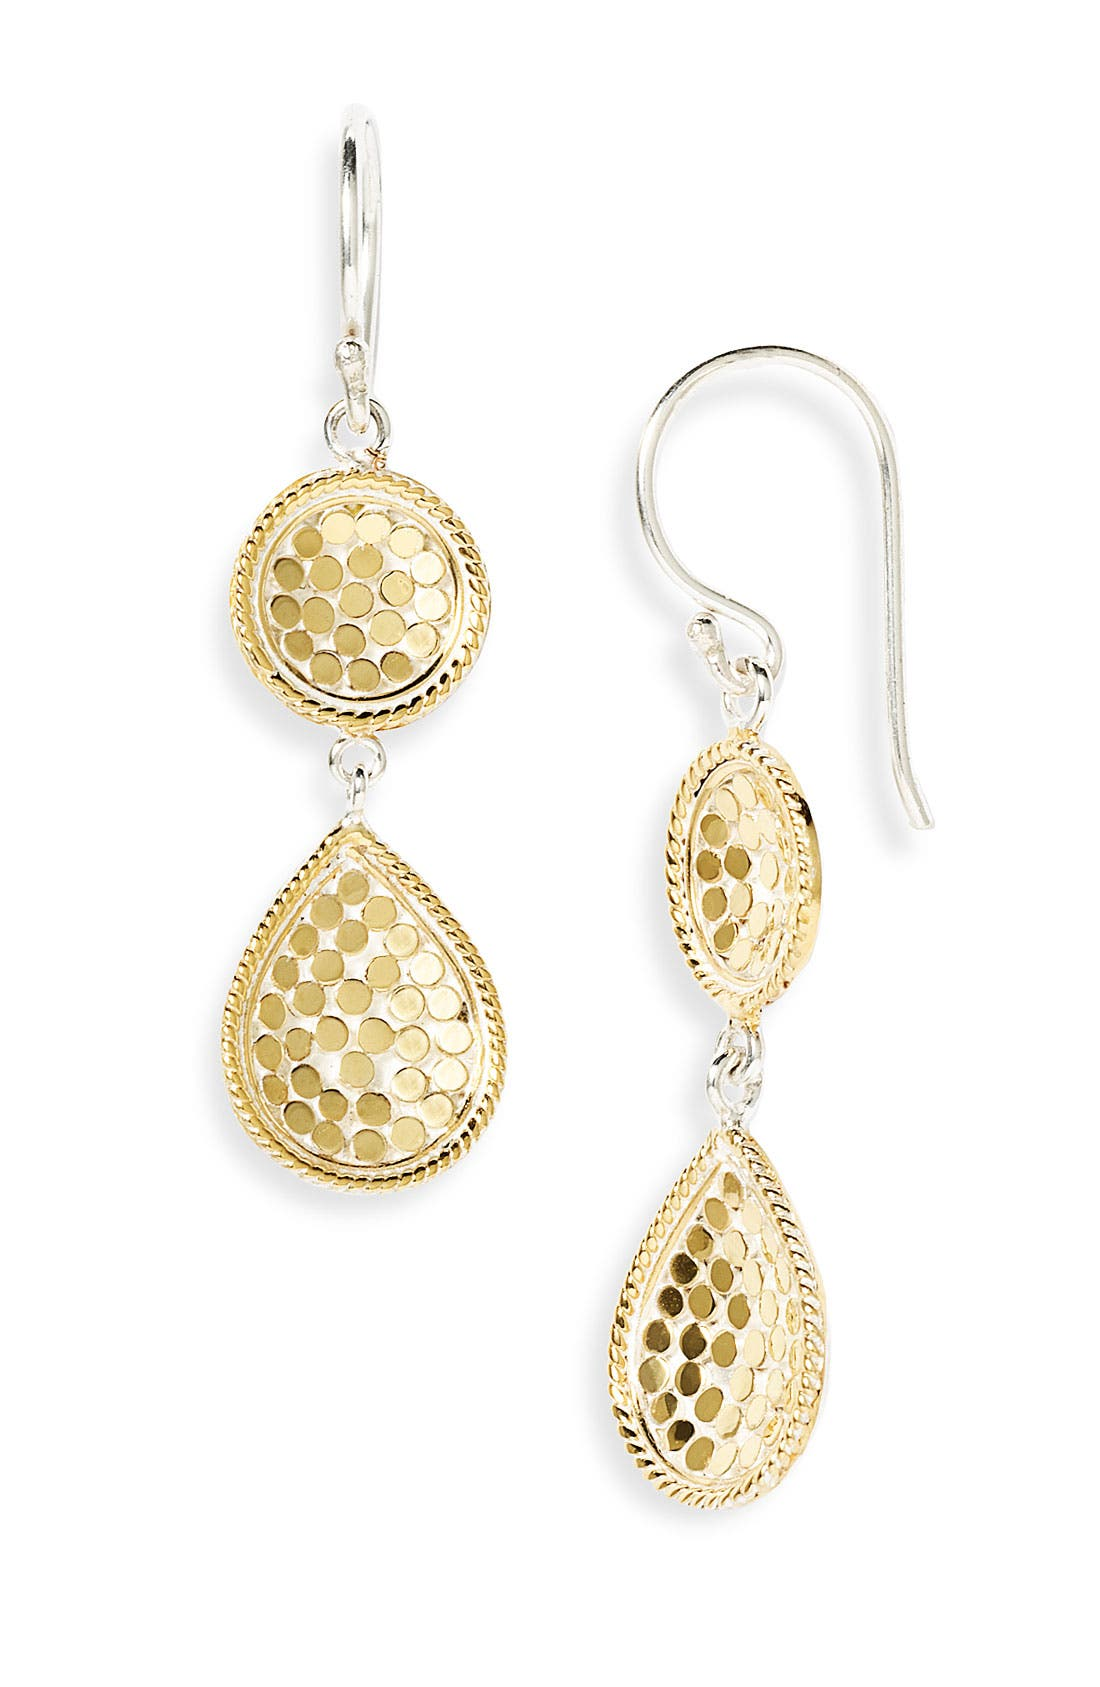 Main Image - Anna Beck 'Gili' Double Drop Earrings